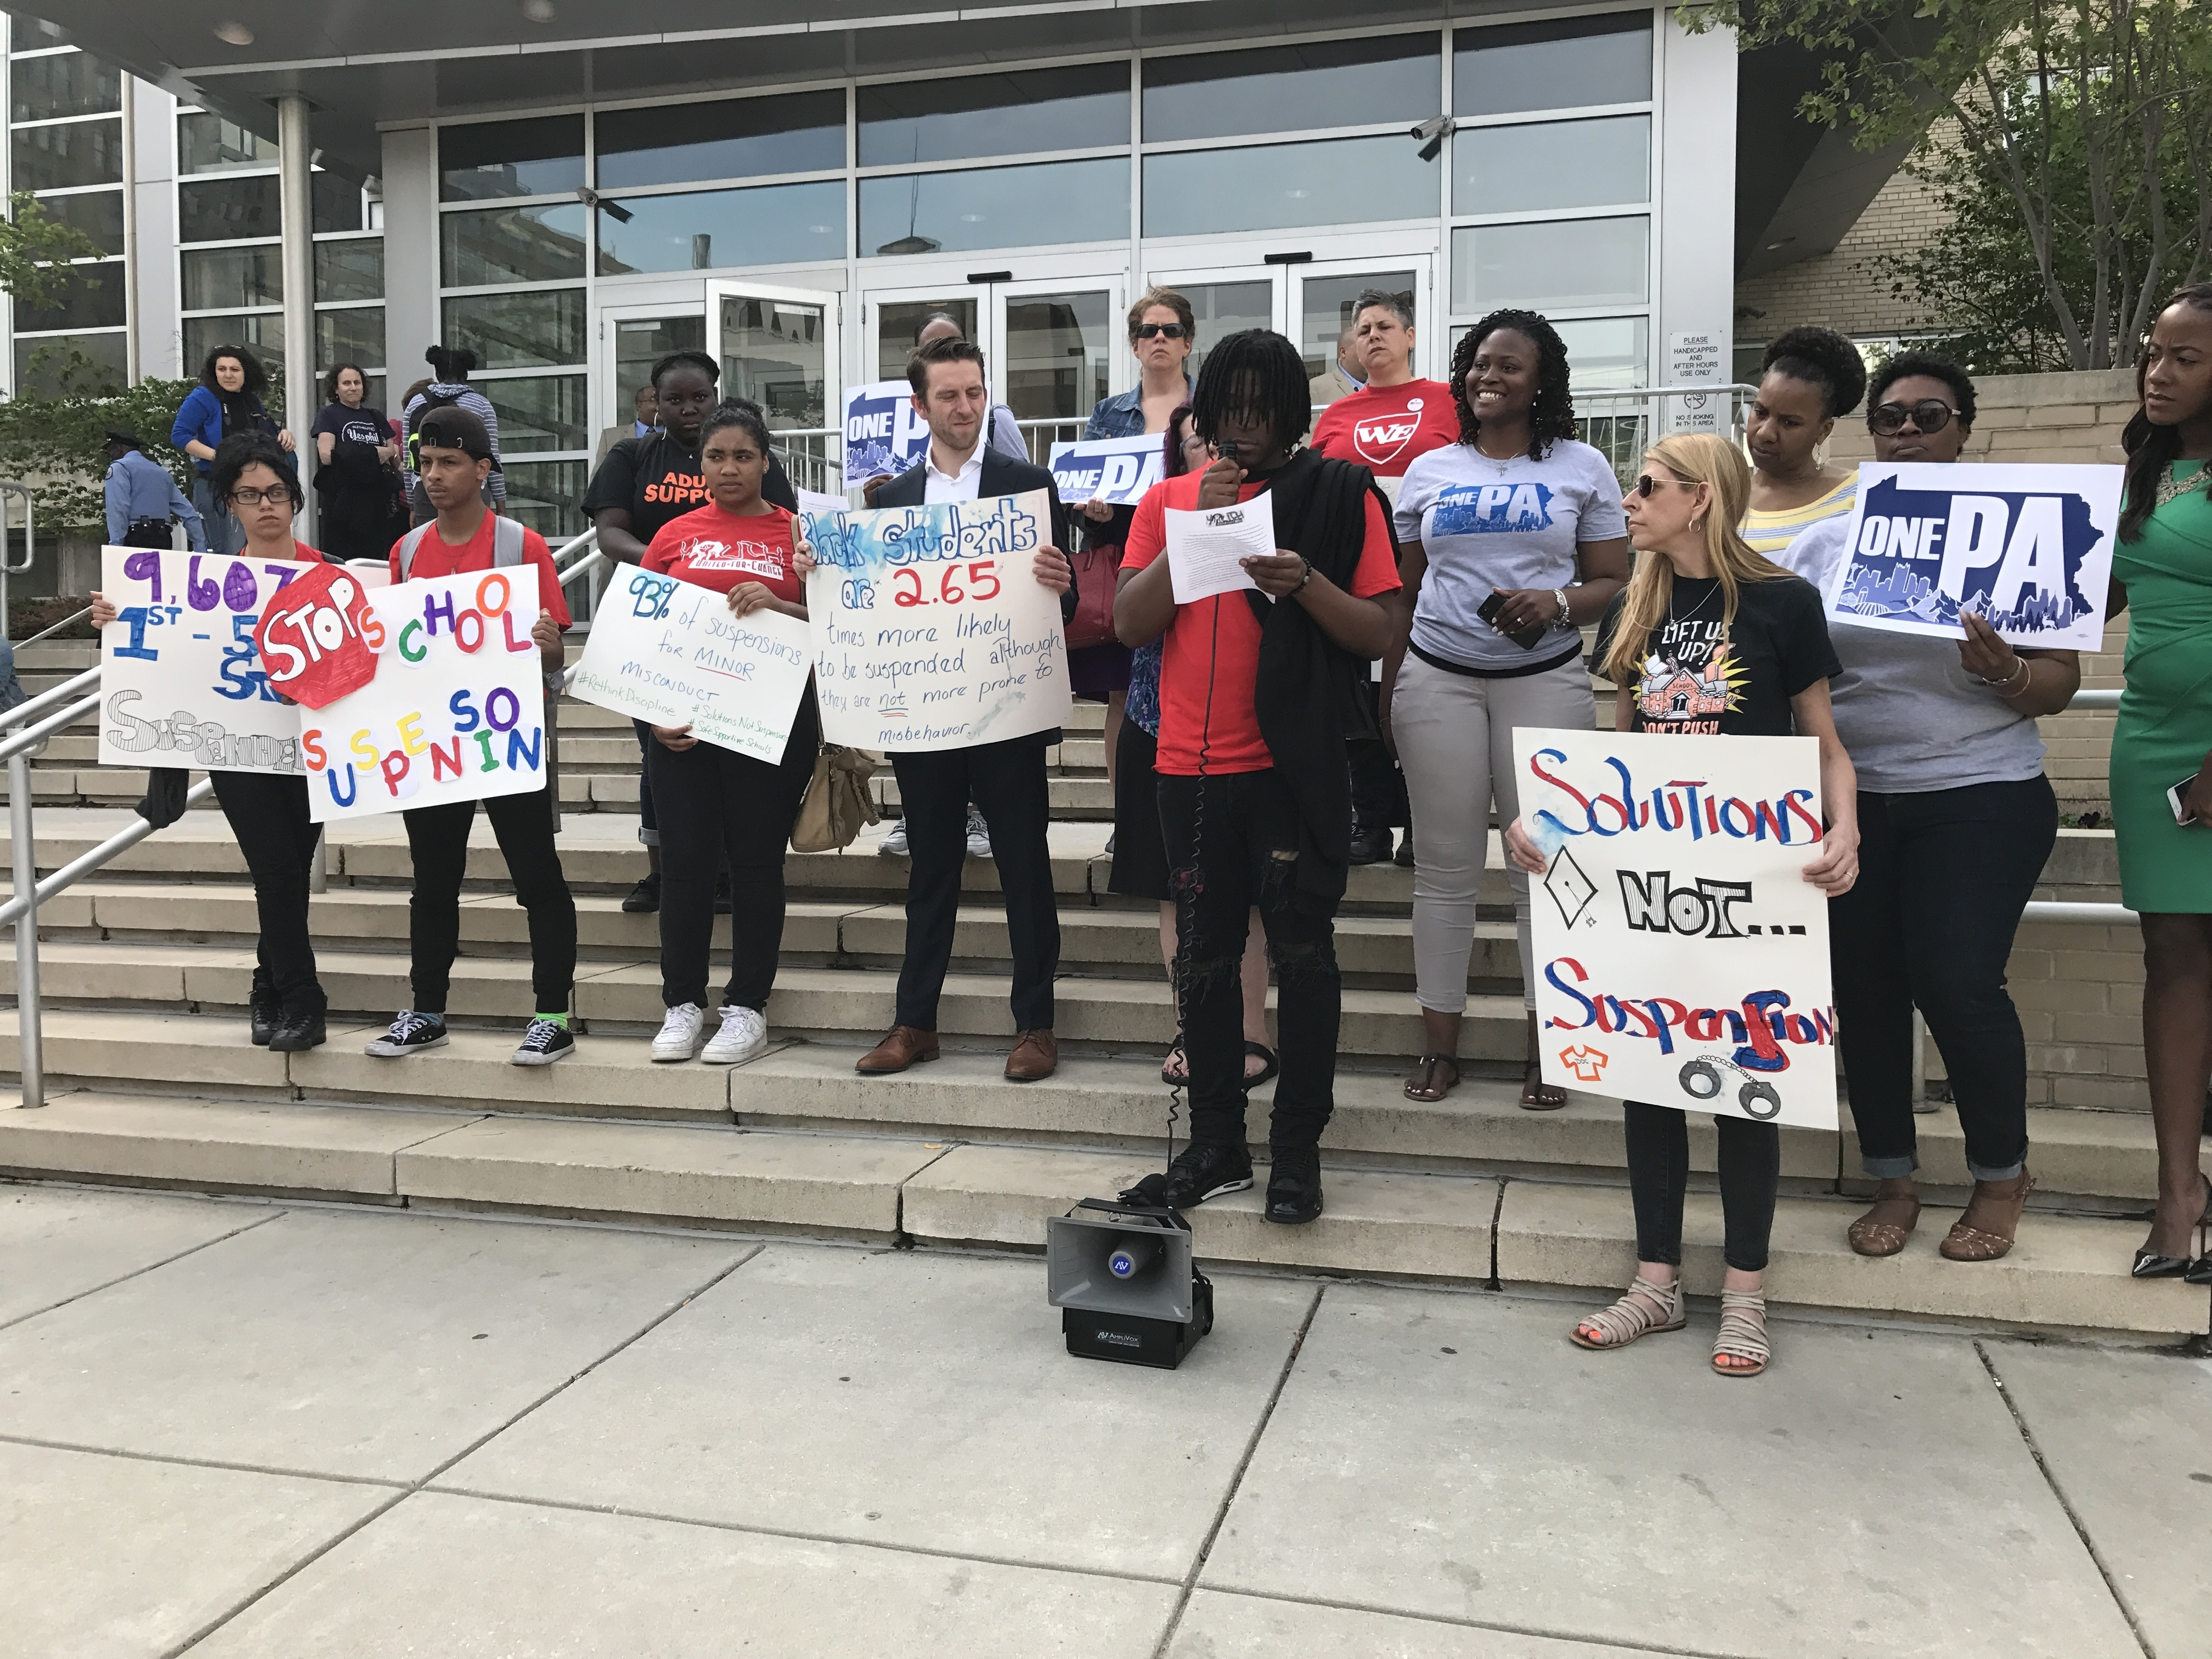 Students from Youth United for Change protested discipline policies in 2017 outside the District administration building.